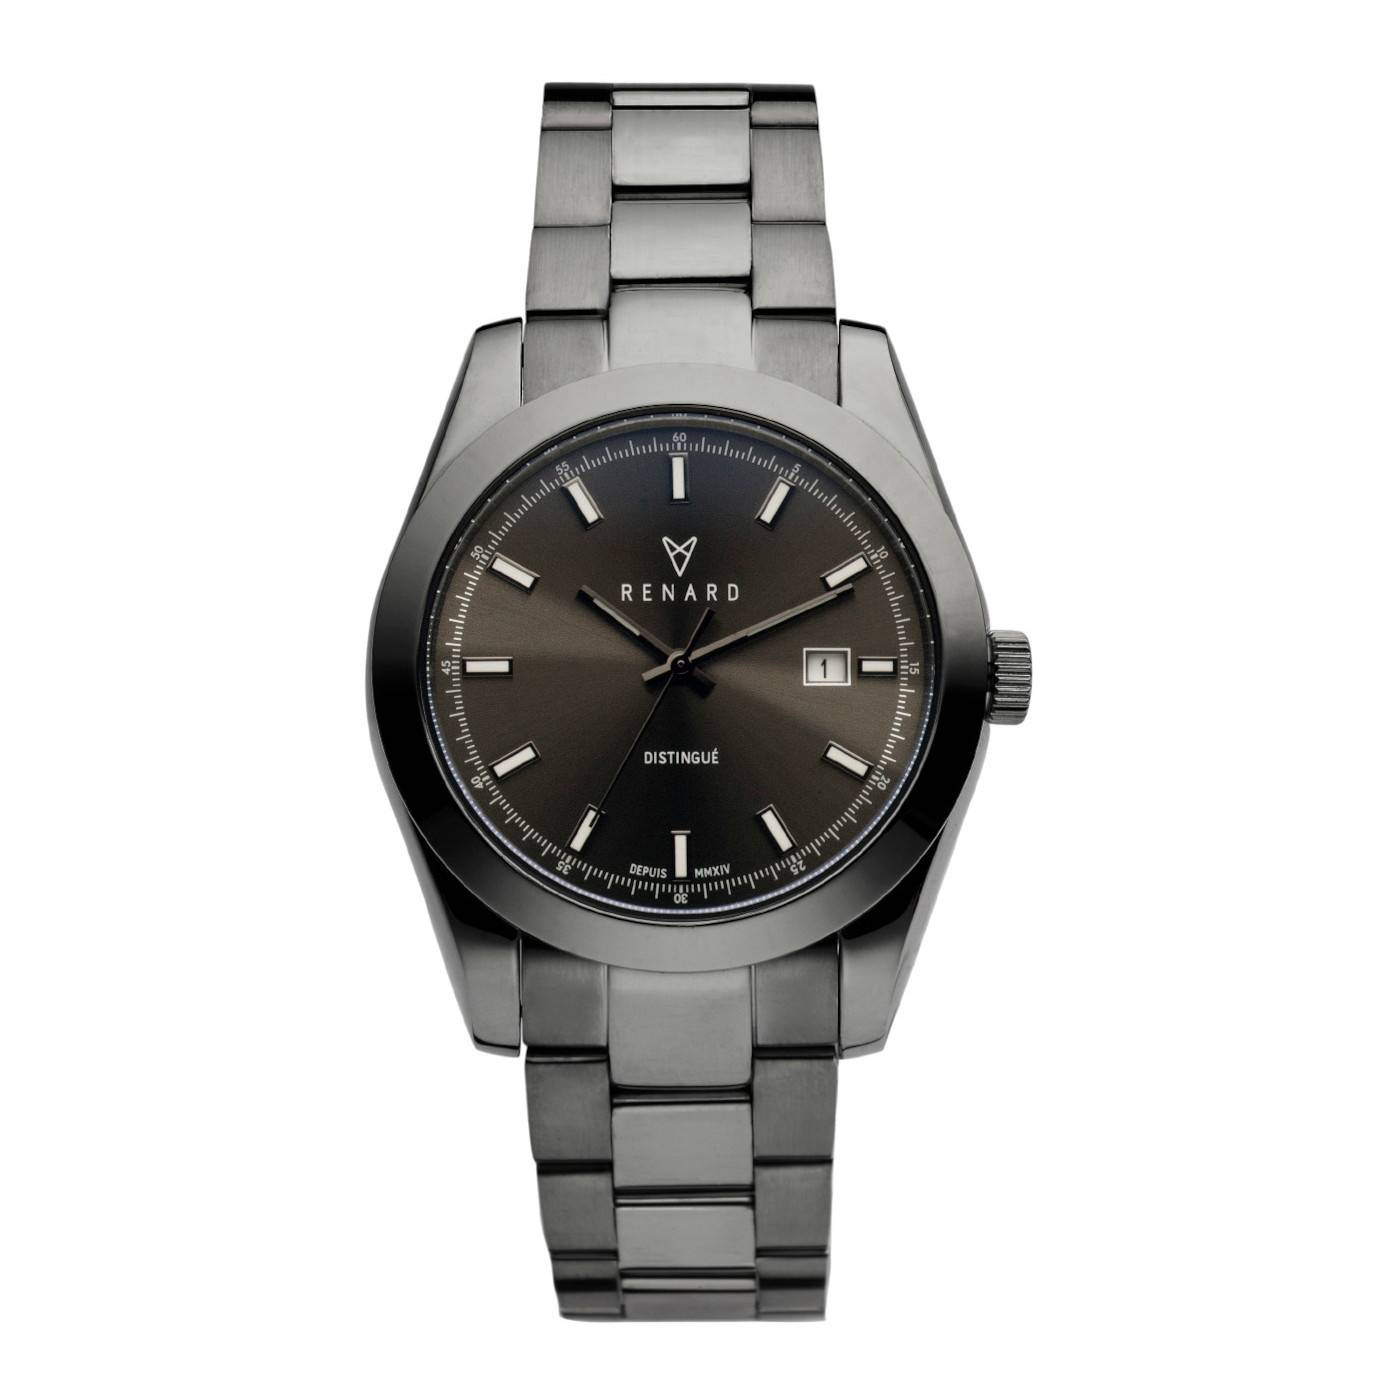 Distingué 40.0 men's watch gunmetal